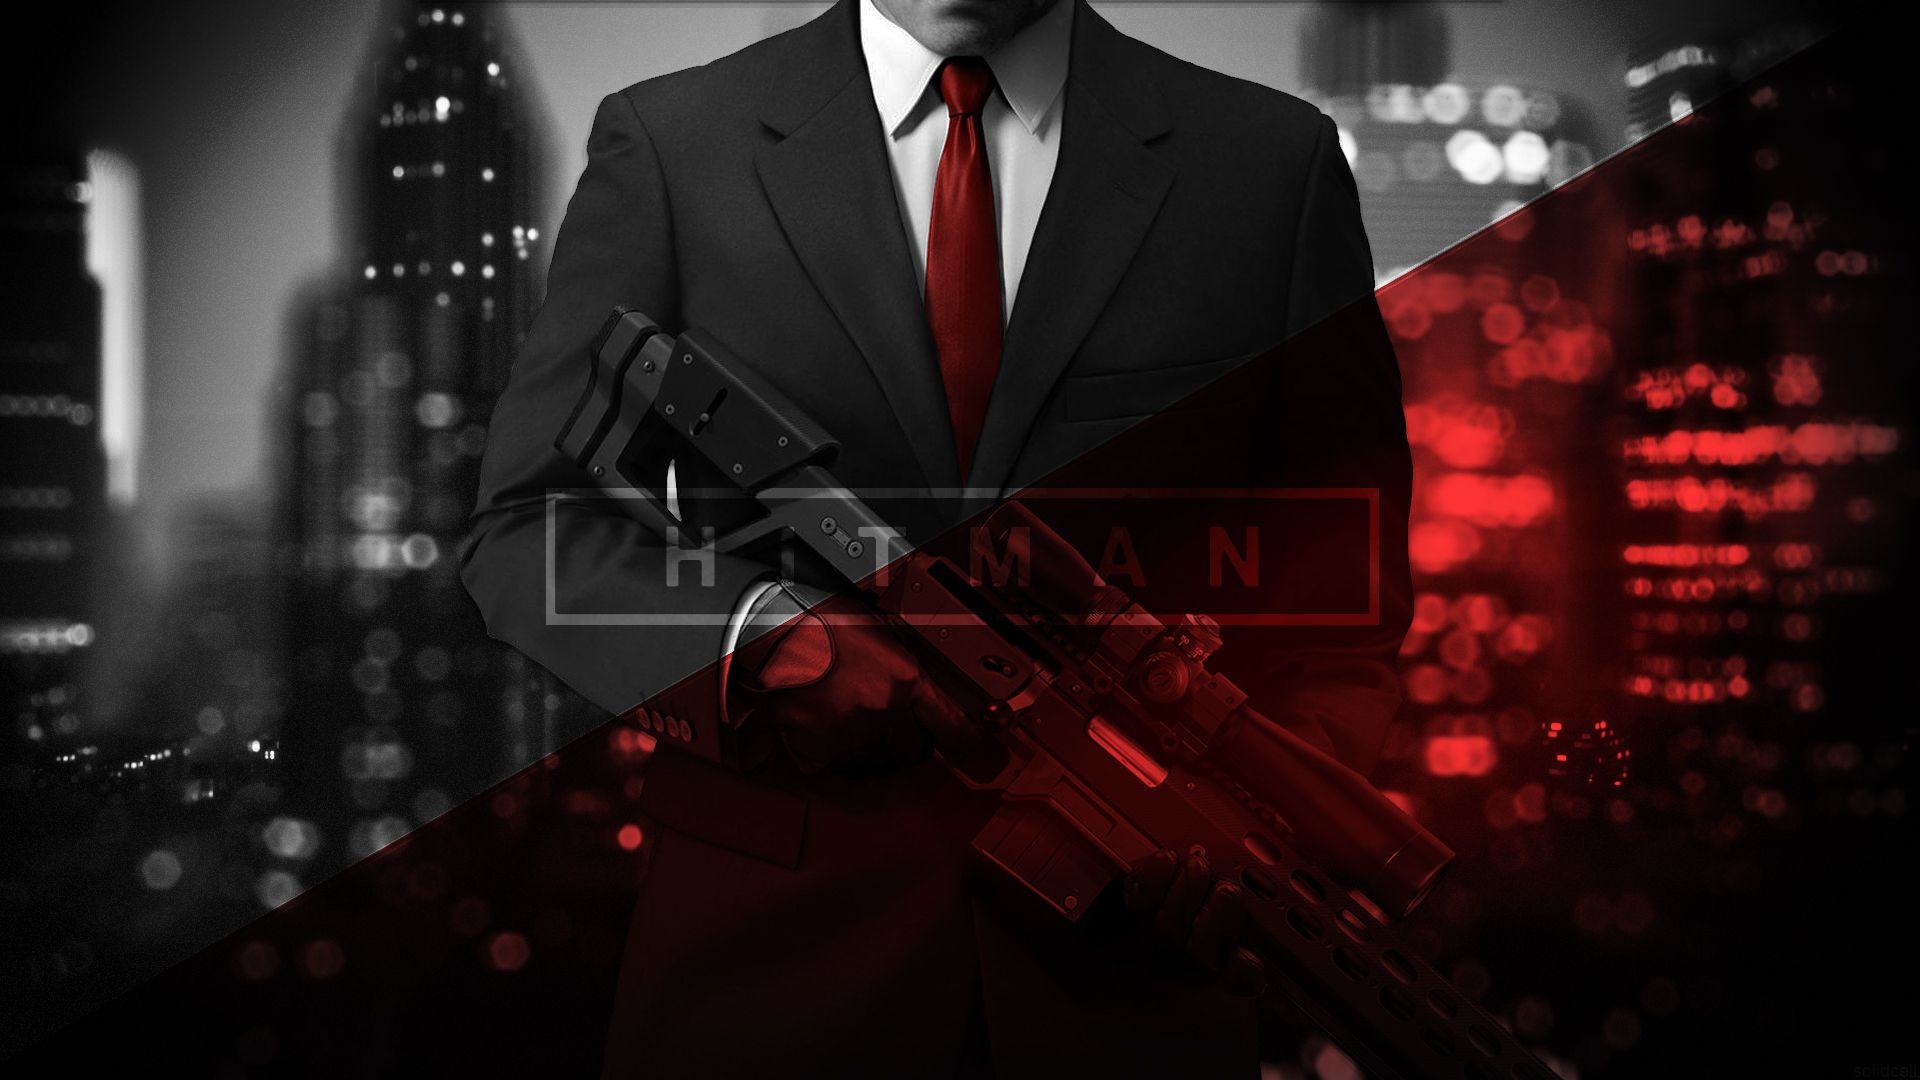 Hitman Absolution Wallpapers 1920×1200 Hitman Wallpapers (36 Wallpapers) | Adorable Wallpapers